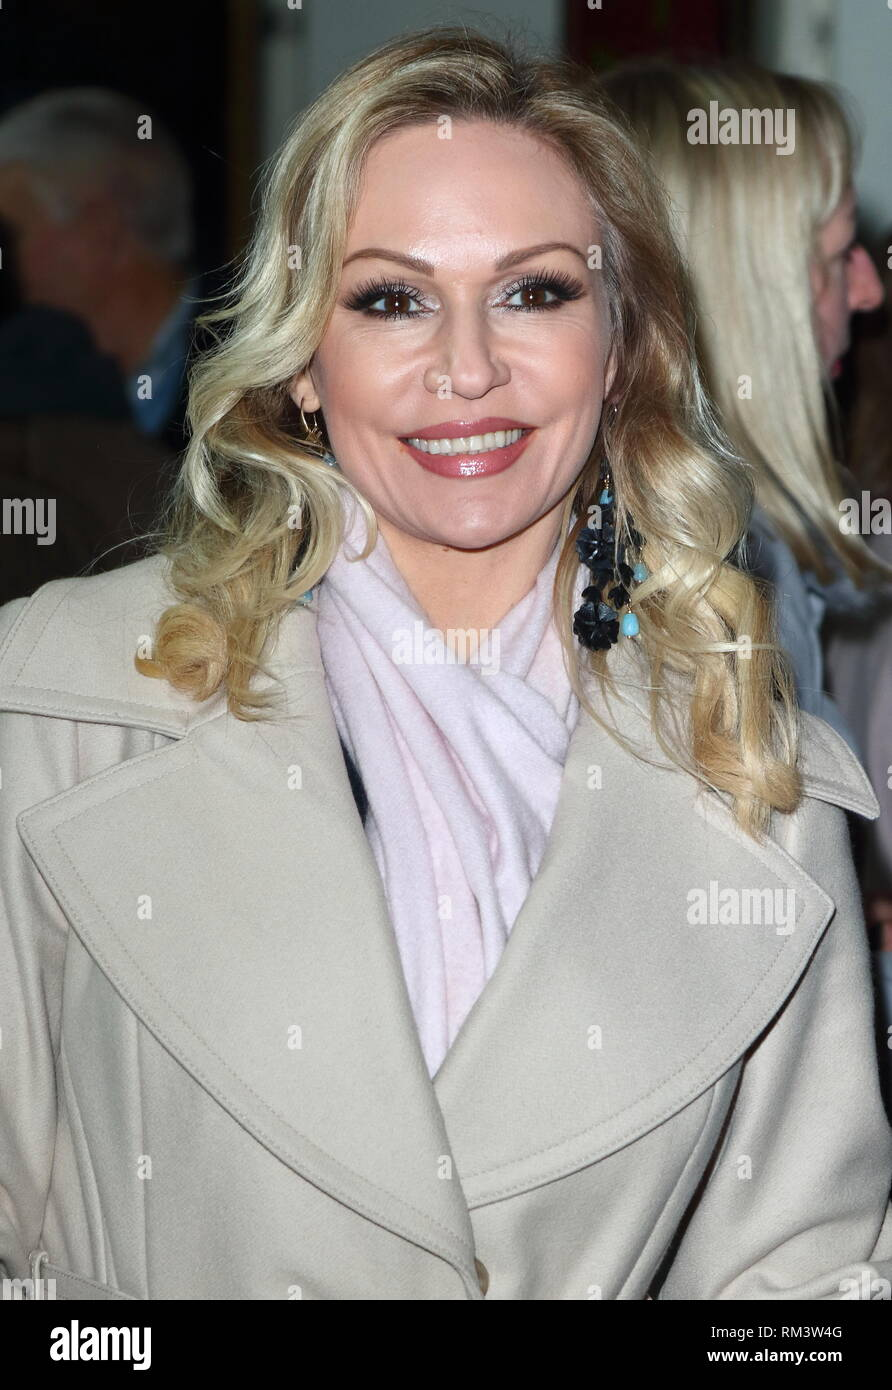 Kristina Rihanoff at the Rip It Up Press Night at the Garrick Theatre, Charing Cross Road. - Stock Image